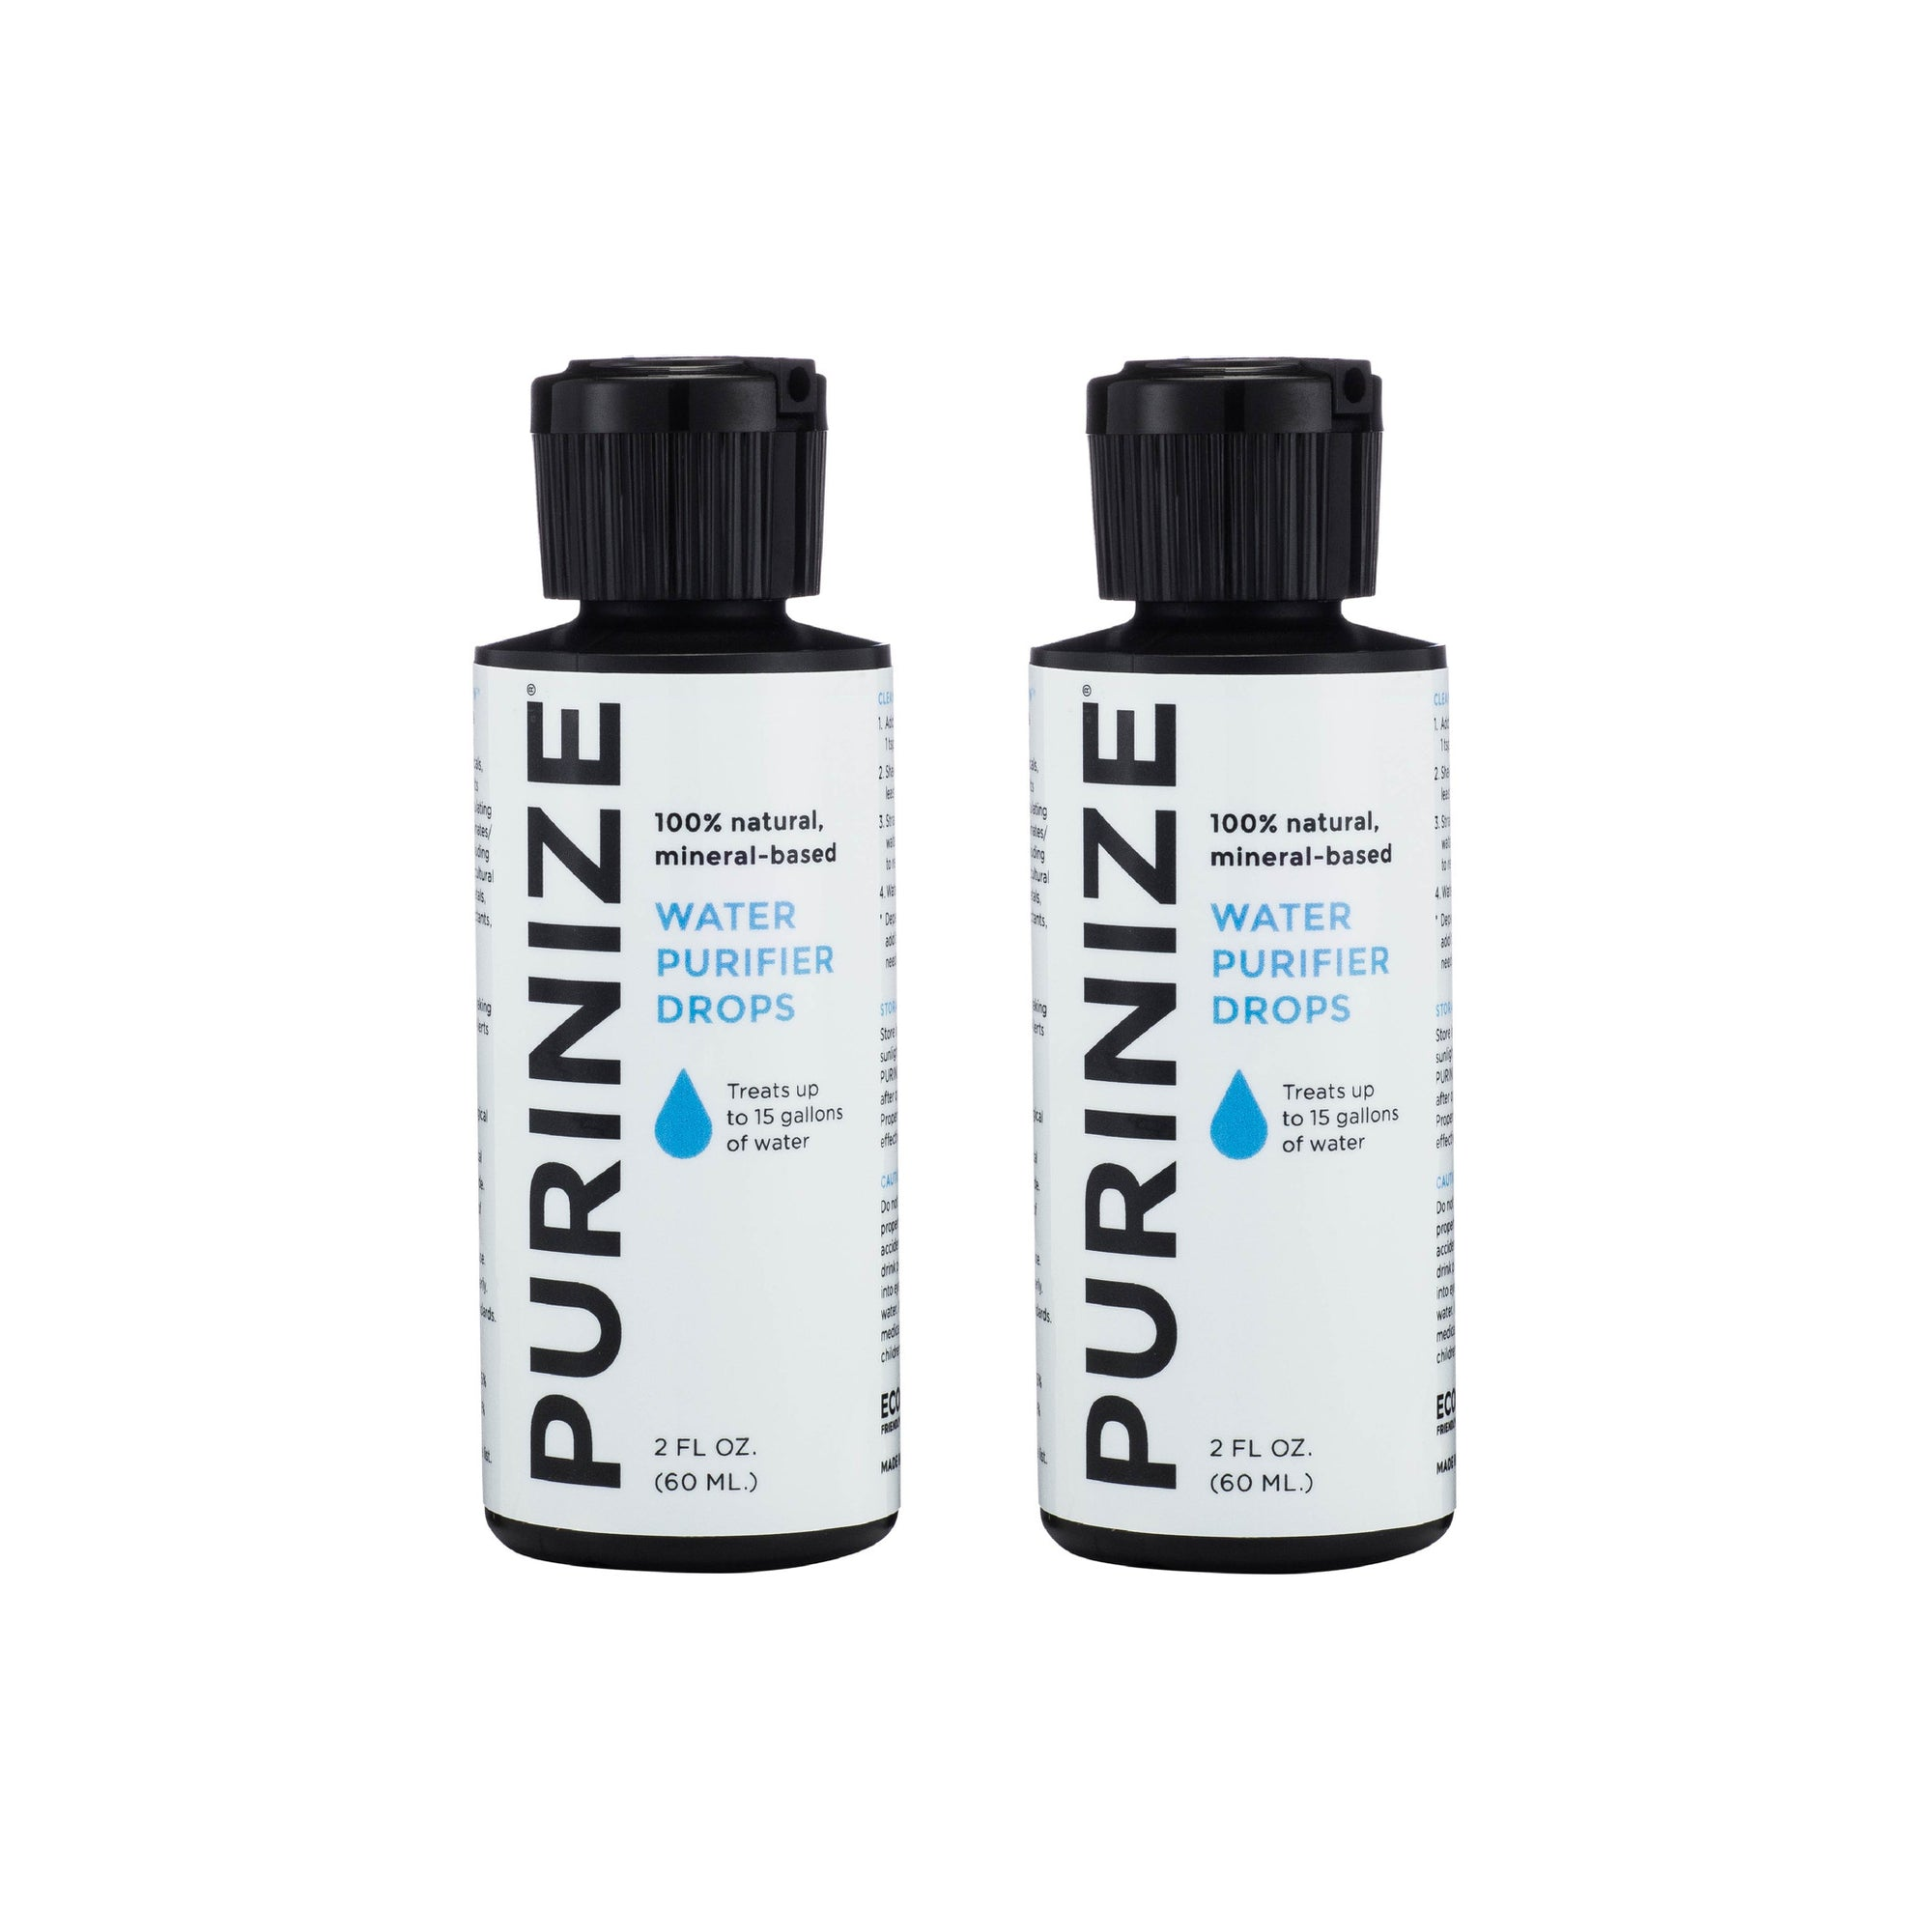 PURINIZE® WATER PURIFIER DROPS 2 OZ. 2-PACK (10% OFF)